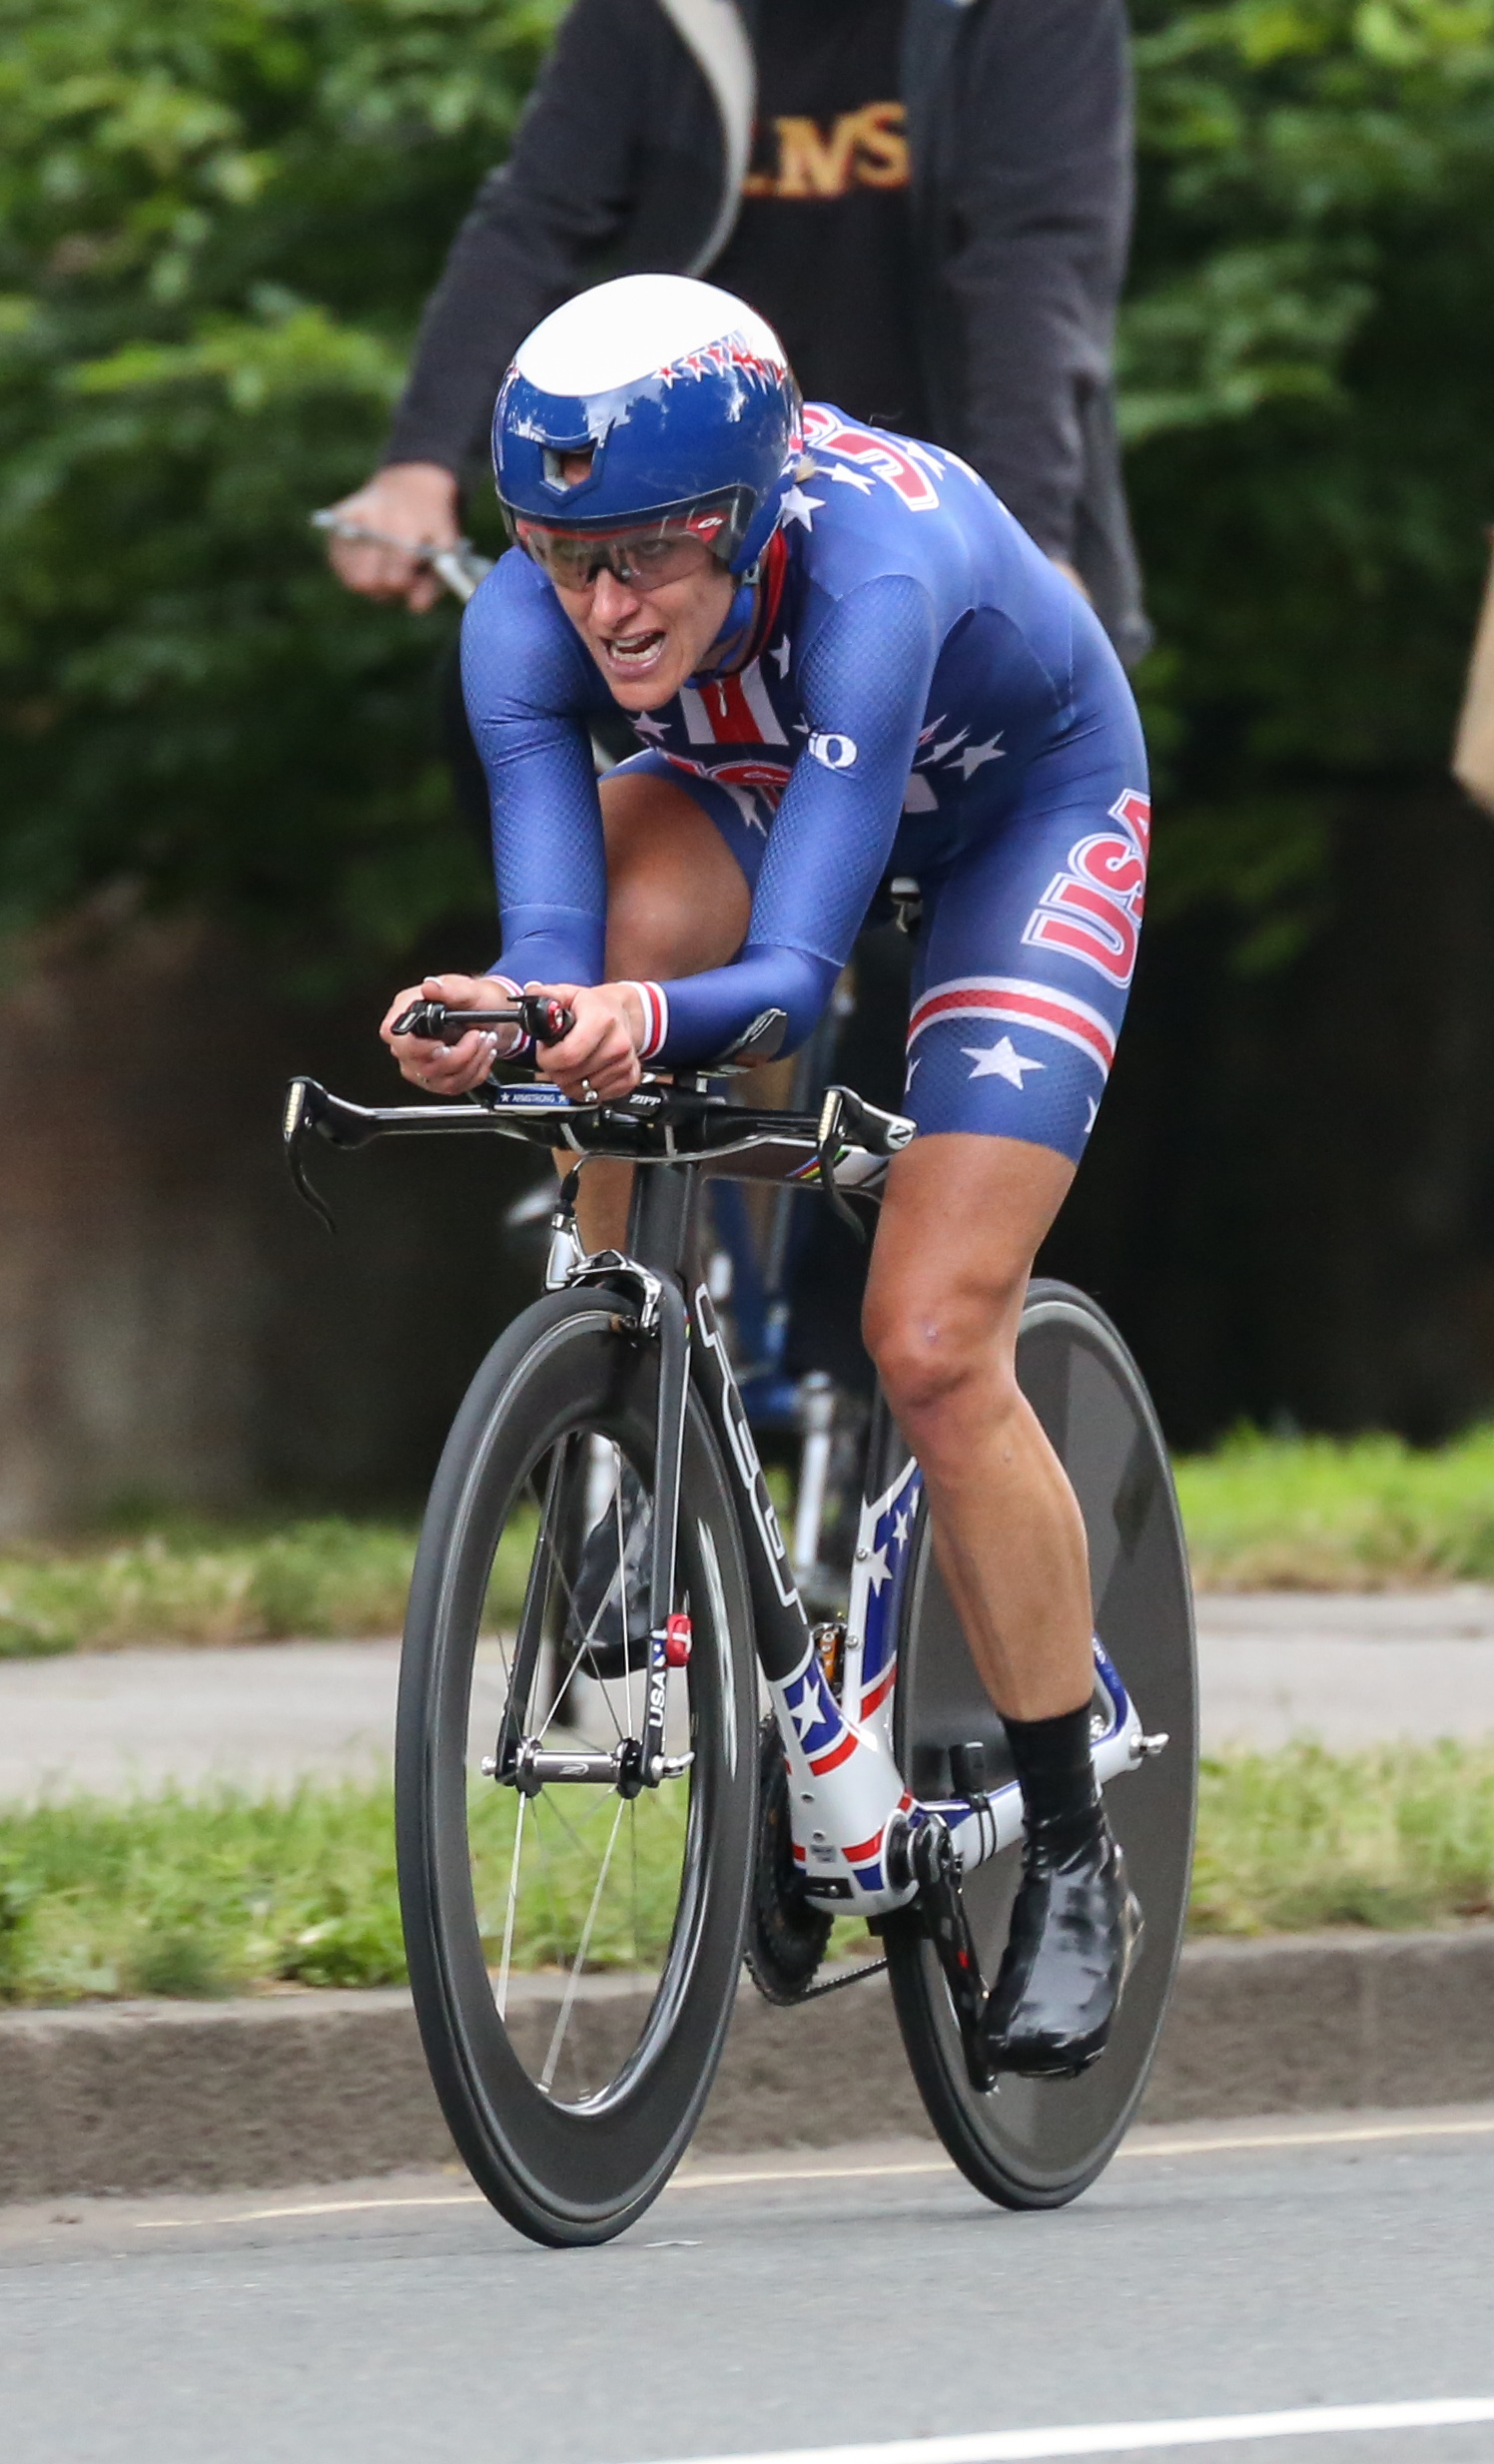 The 45-year old daughter of father (?) and mother(?) Kristin Armstrong in 2018 photo. Kristin Armstrong earned a  million dollar salary - leaving the net worth at 2 million in 2018